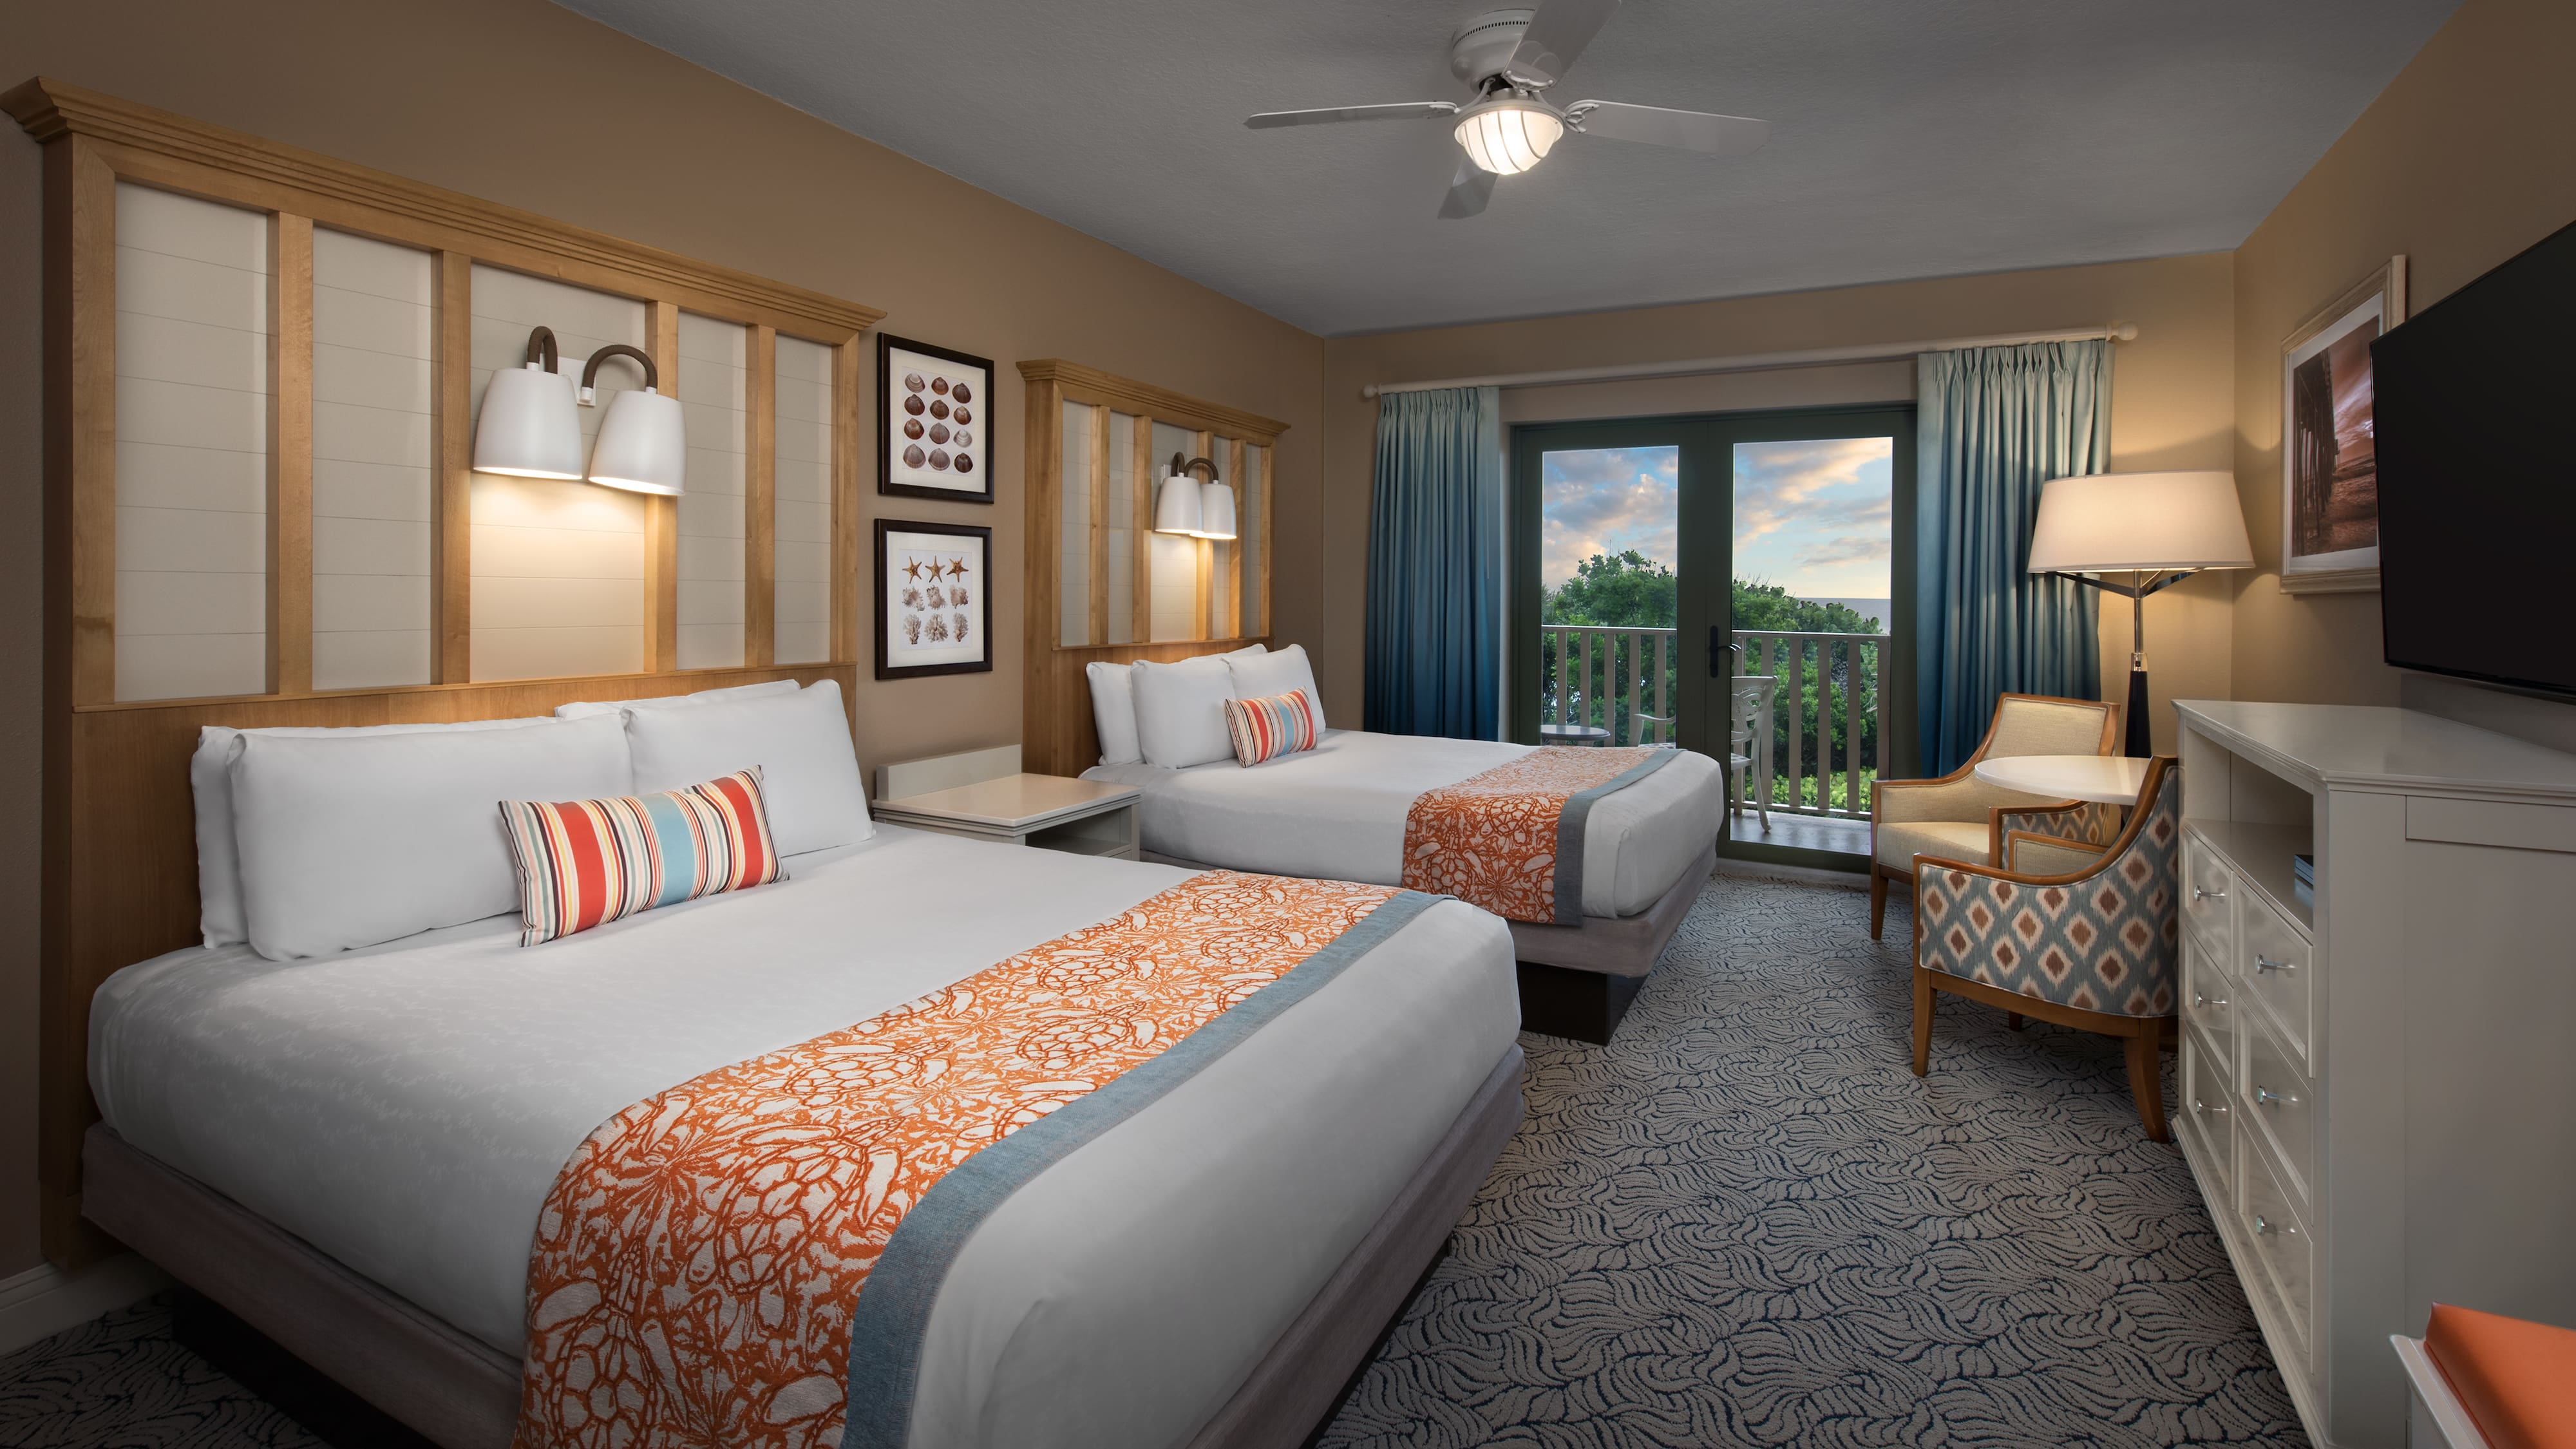 A Deluxe Inn Room With 2 Beds Sitting Area And Balcony Ocean